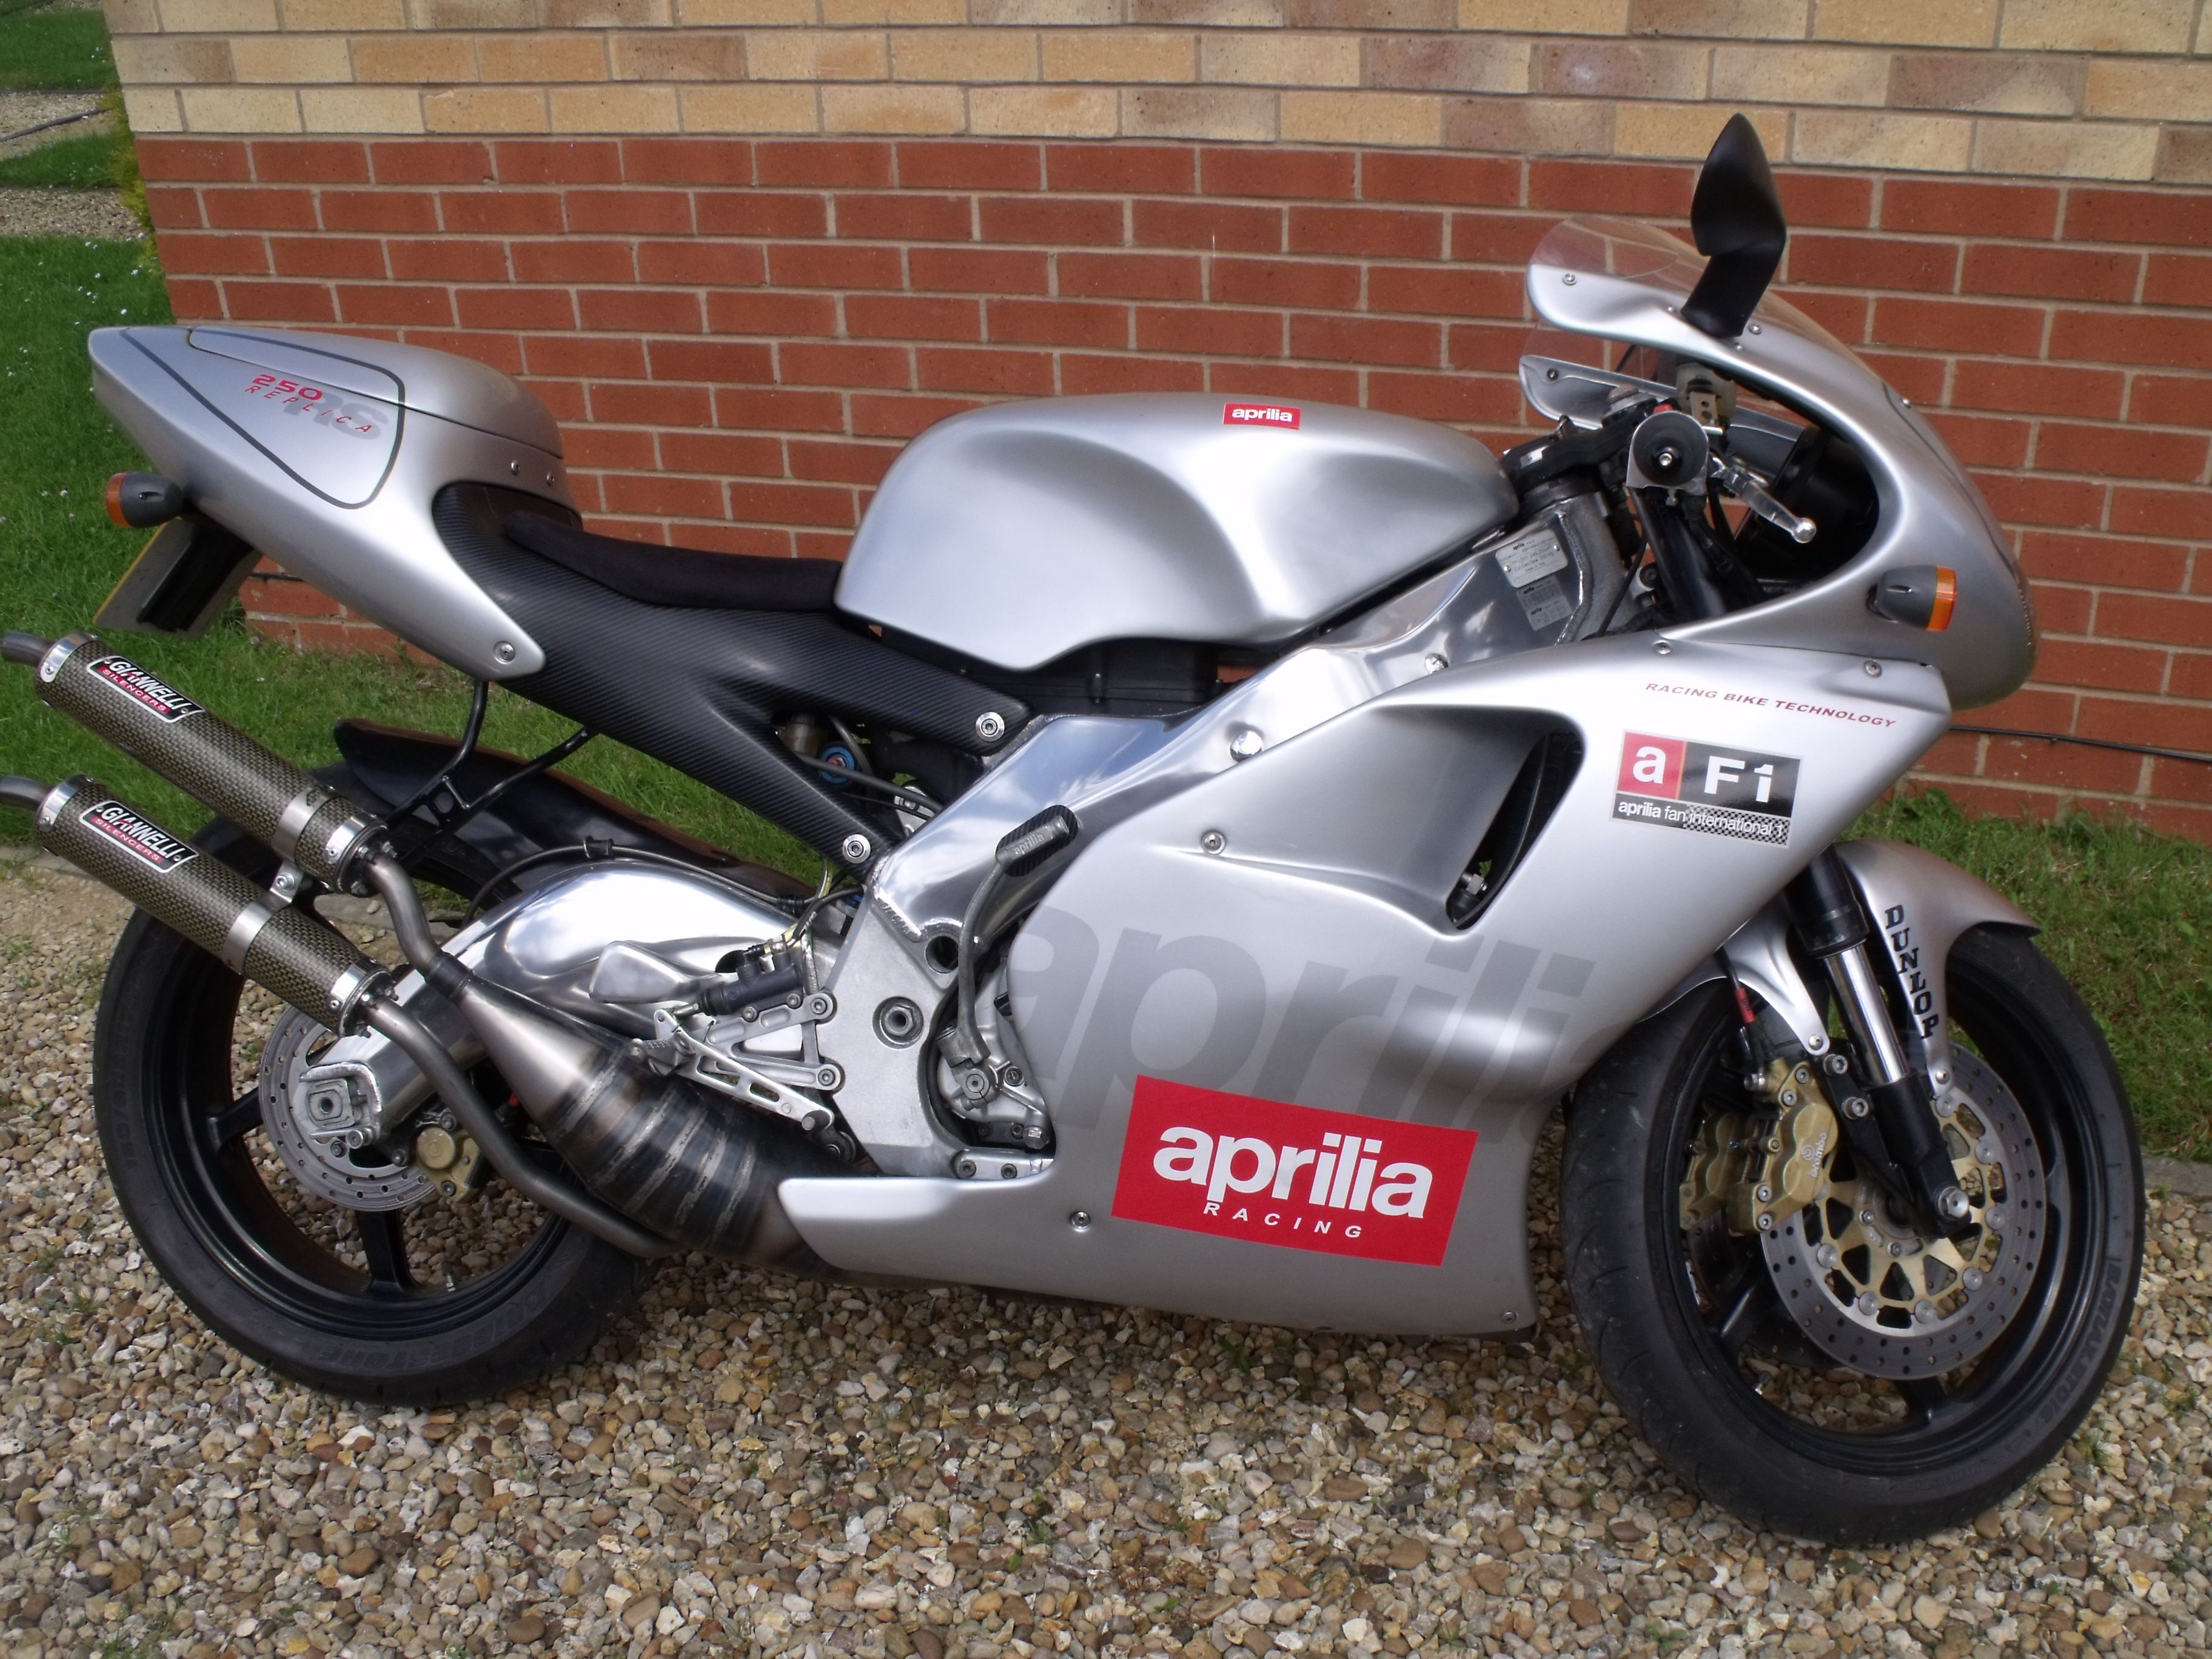 Are mistaken. Pictures of 80s style 600cc bikes naked